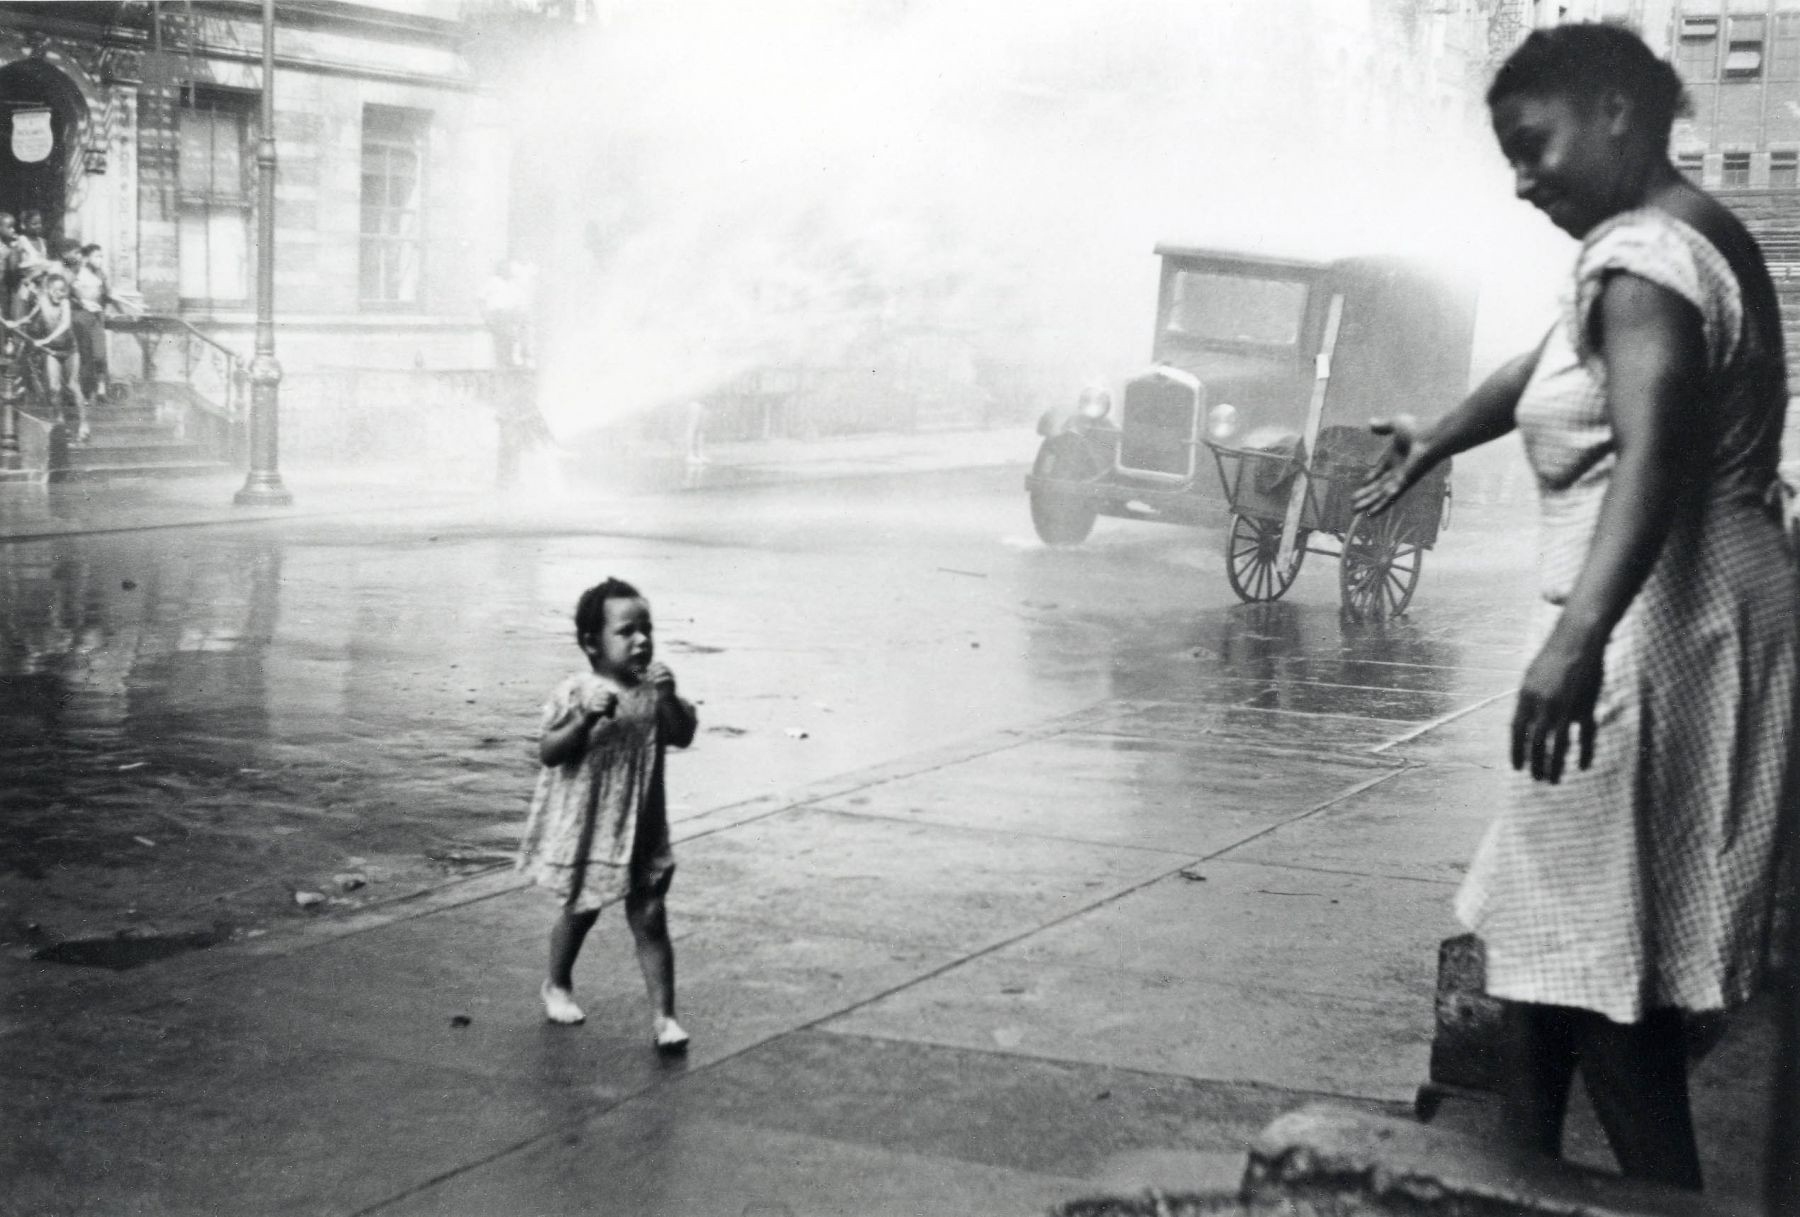 Helen levitt was one of the first photographers to capture street scenes these now legendary photographers learned their craft in a black and white